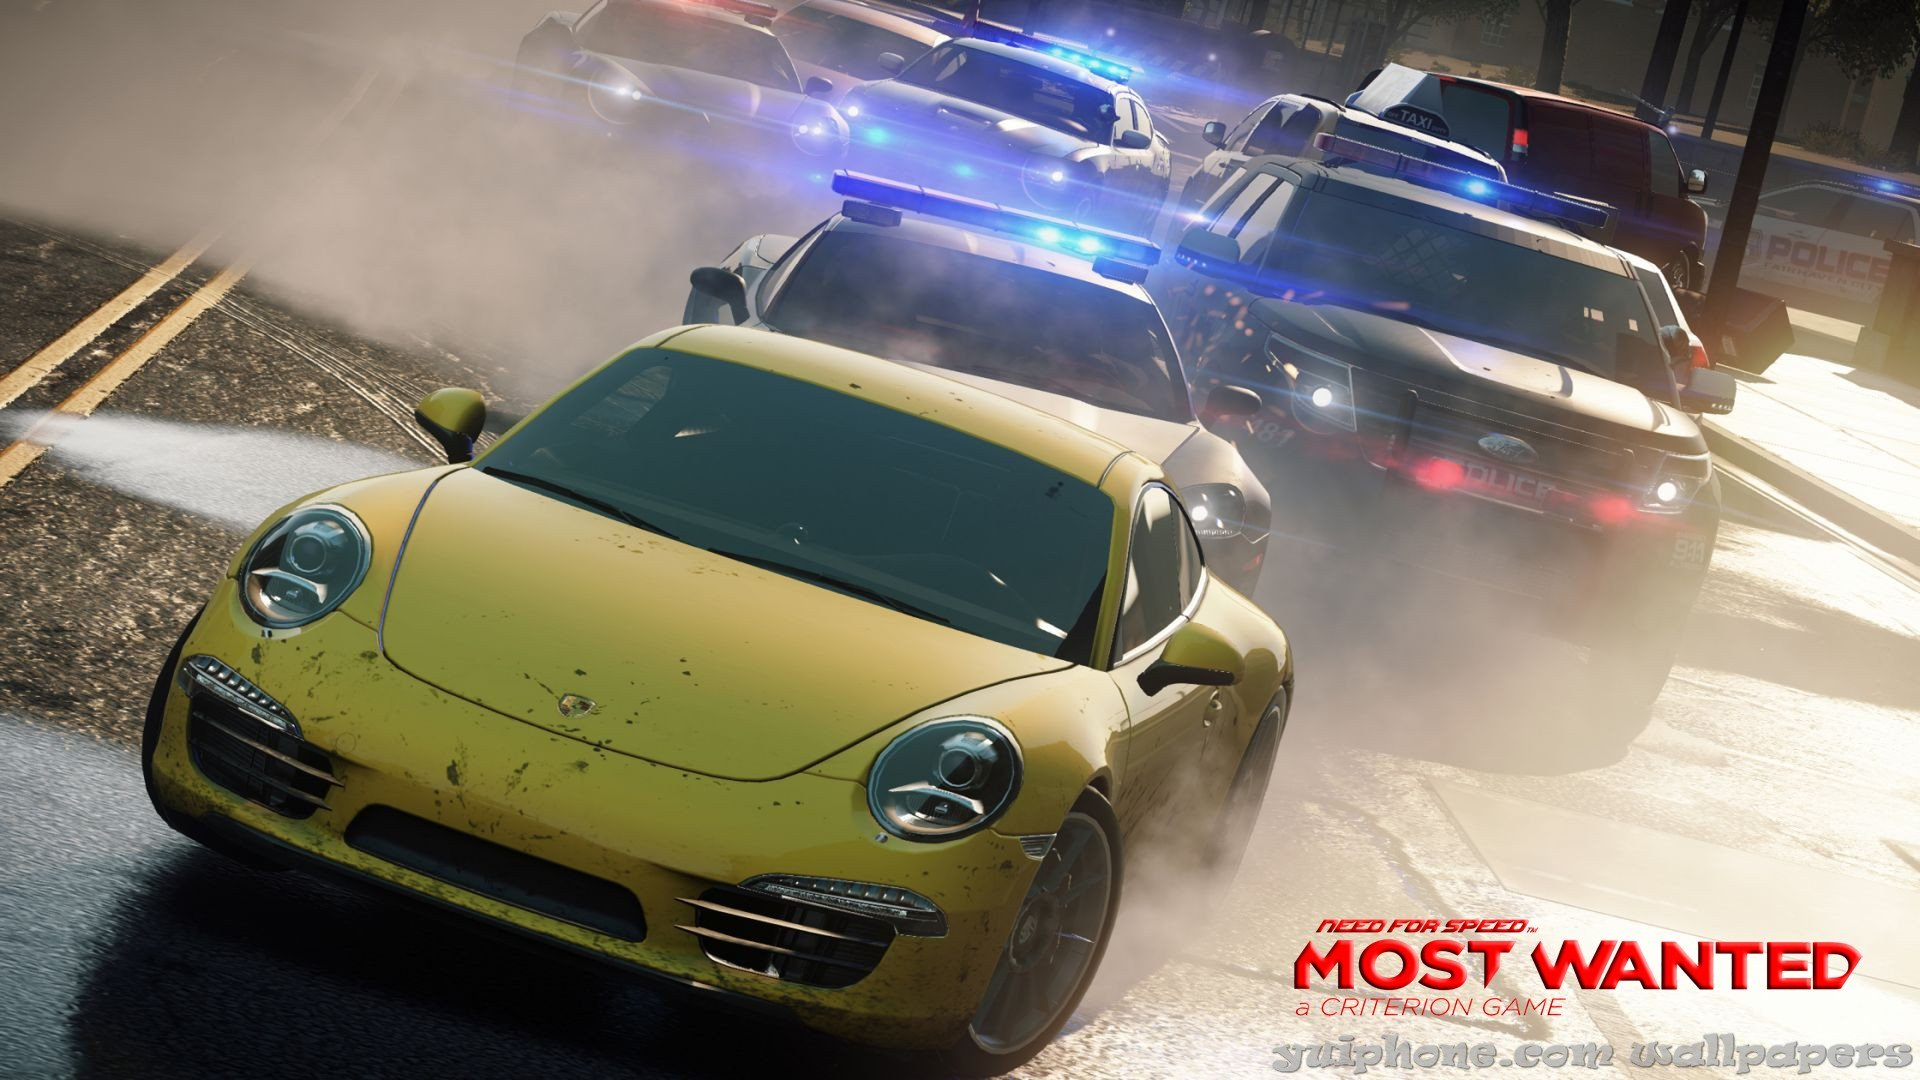 Need For Speed 1430420 Hd Wallpaper Backgrounds Download